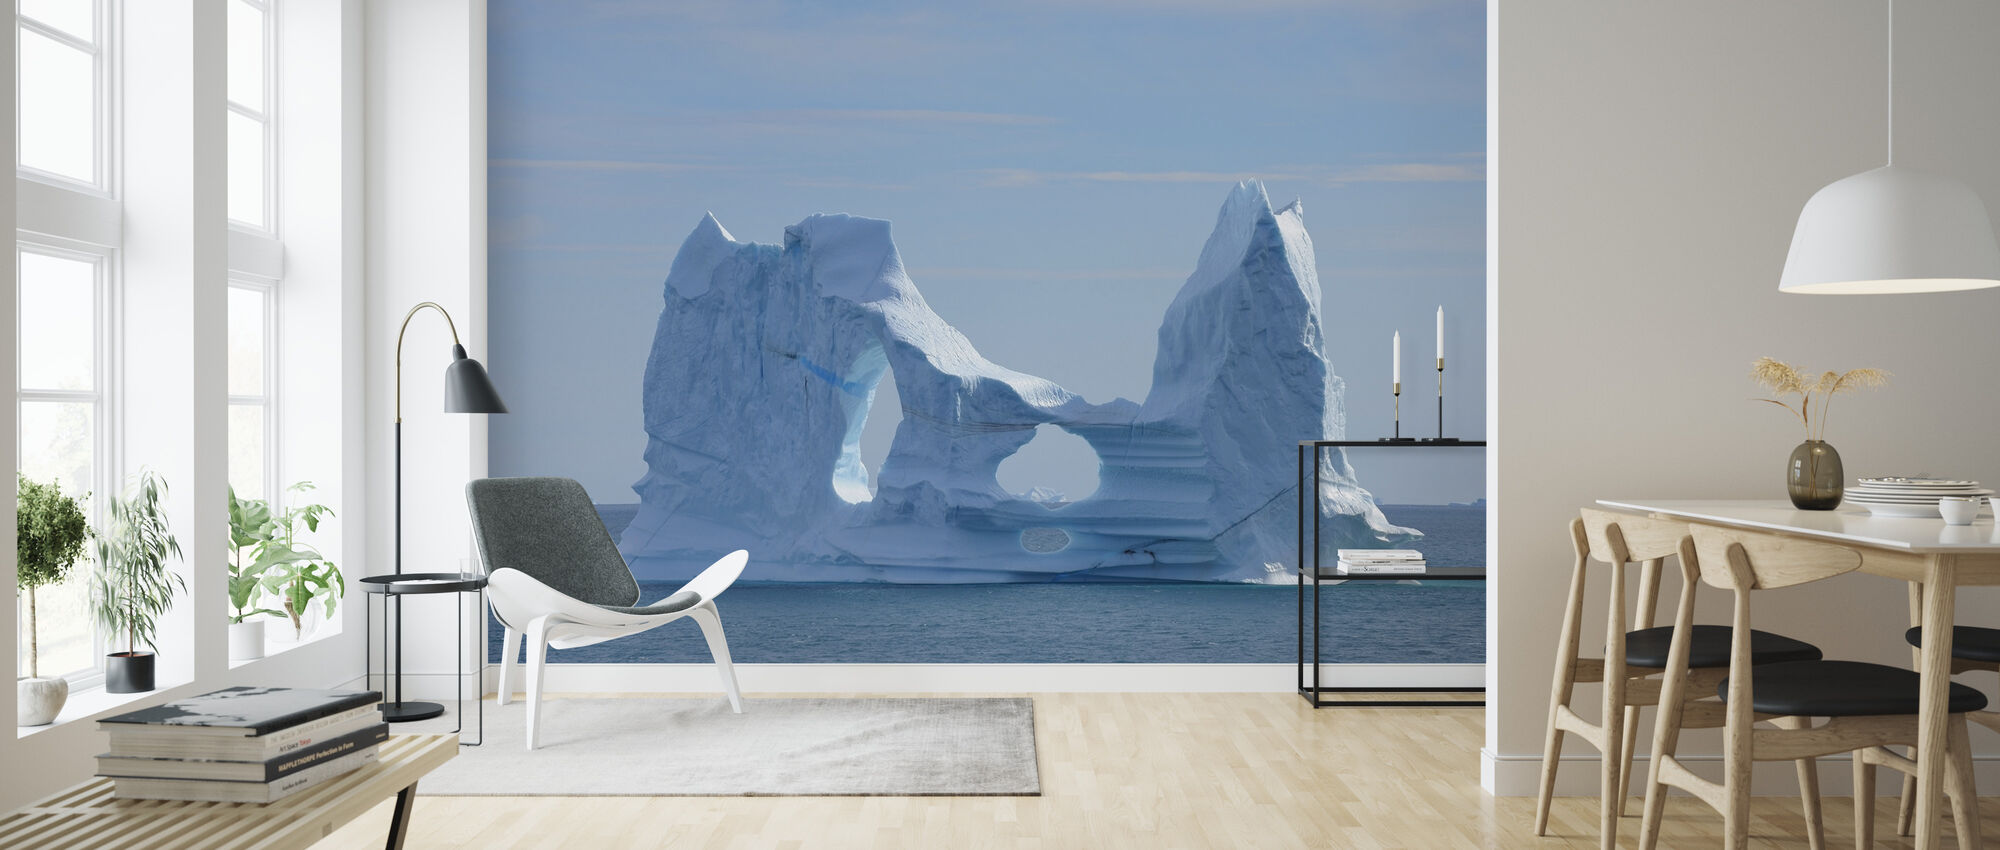 Floating Greenland - Wallpaper - Living Room